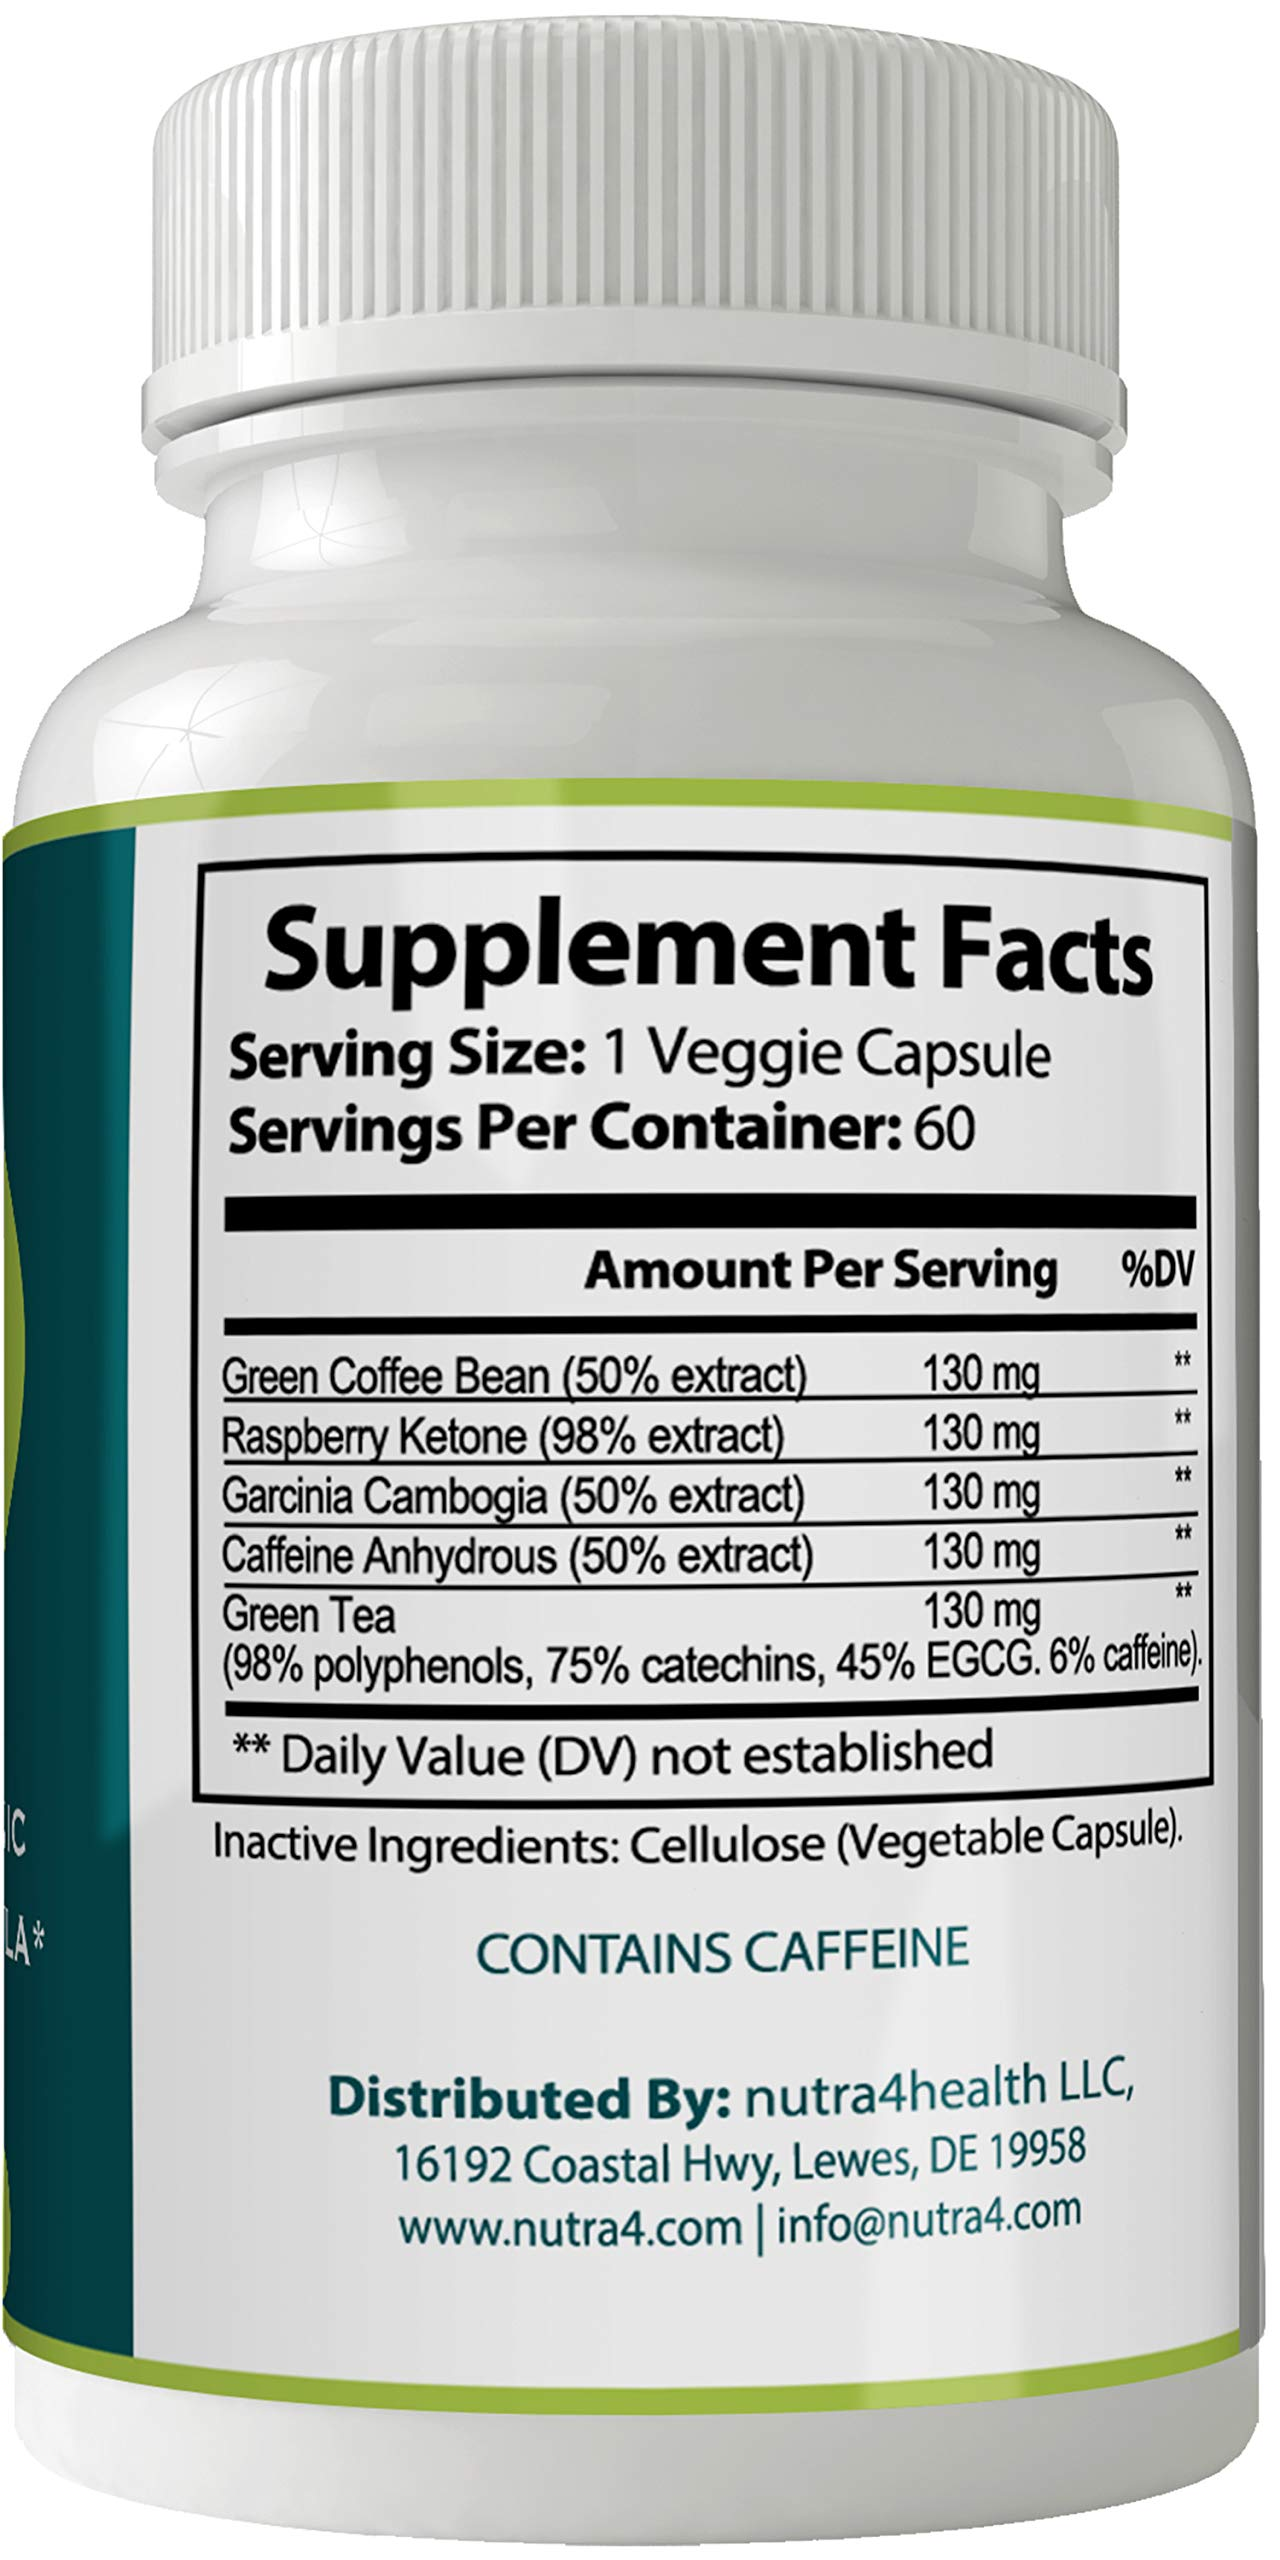 Rapid Trim 24/7 Weight Loss Pills Keto Diet Capsules, Weightloss Lean Fat Burner, Advanced Thermal Fat Loss Supplement for Women and Men by nutra4health LLC (Image #2)